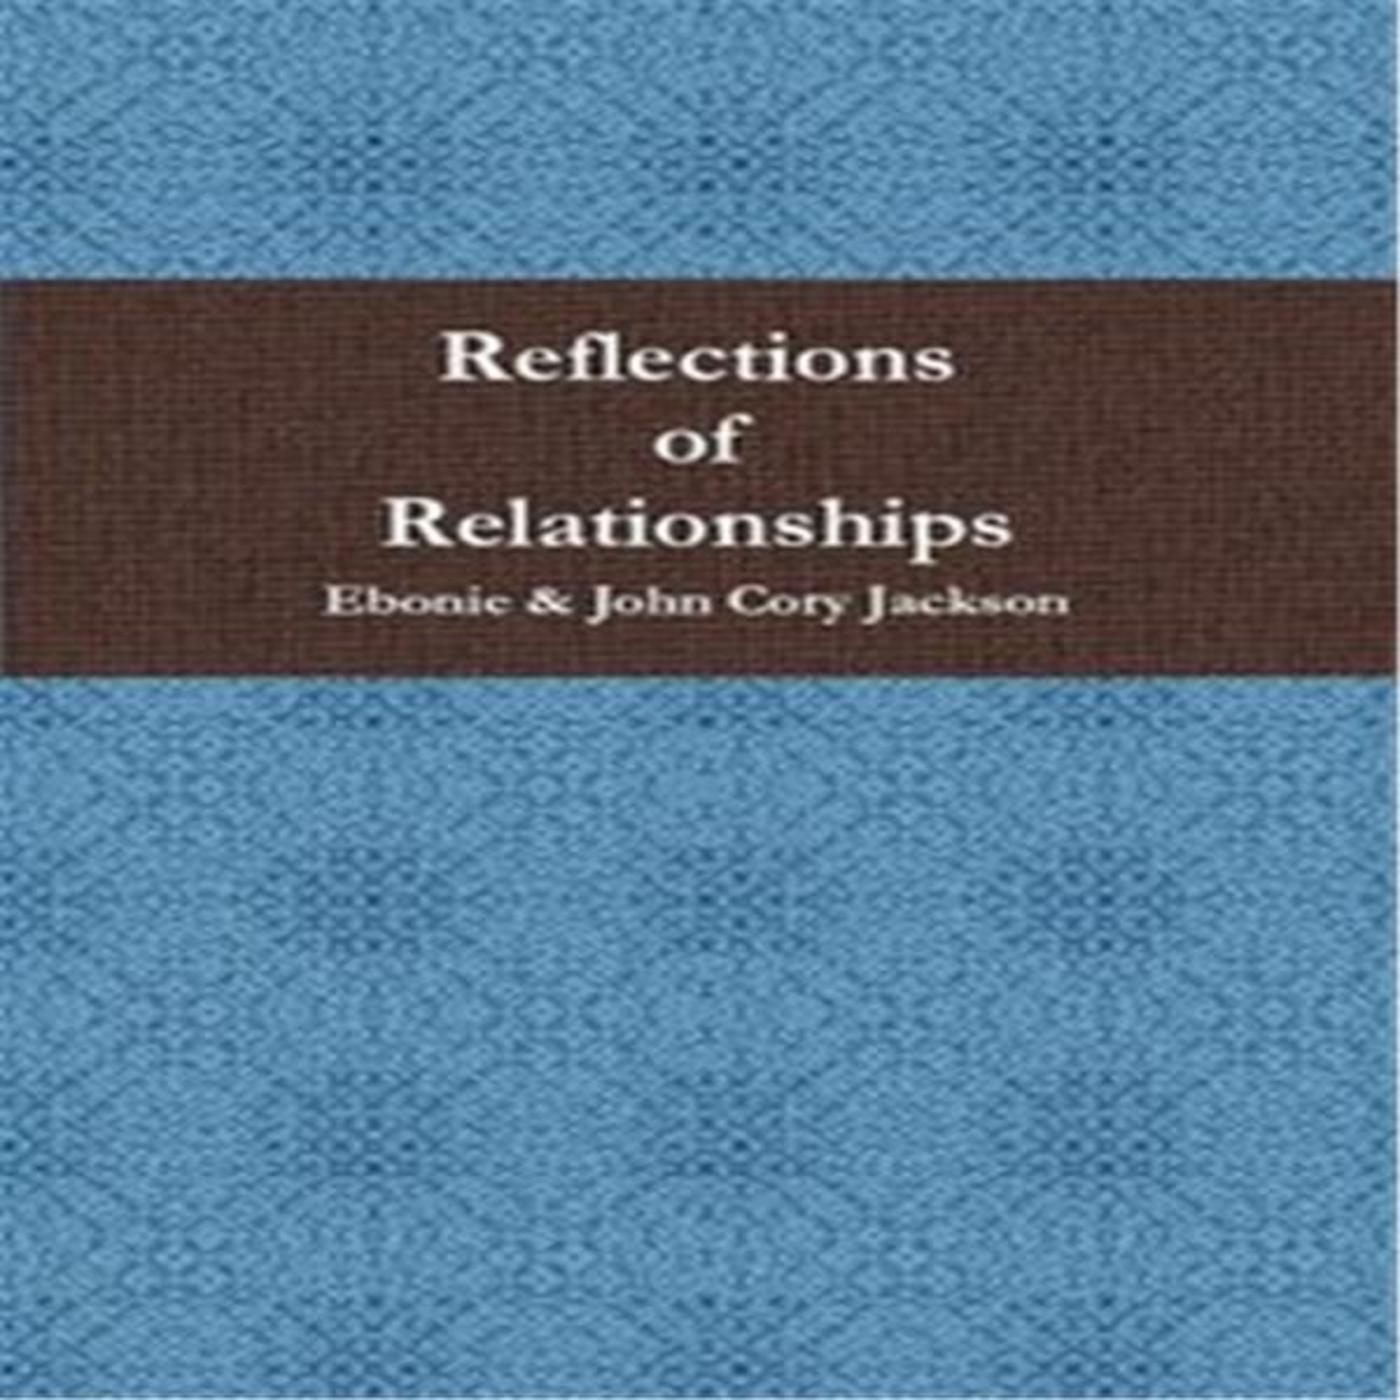 Reflections of Relationships